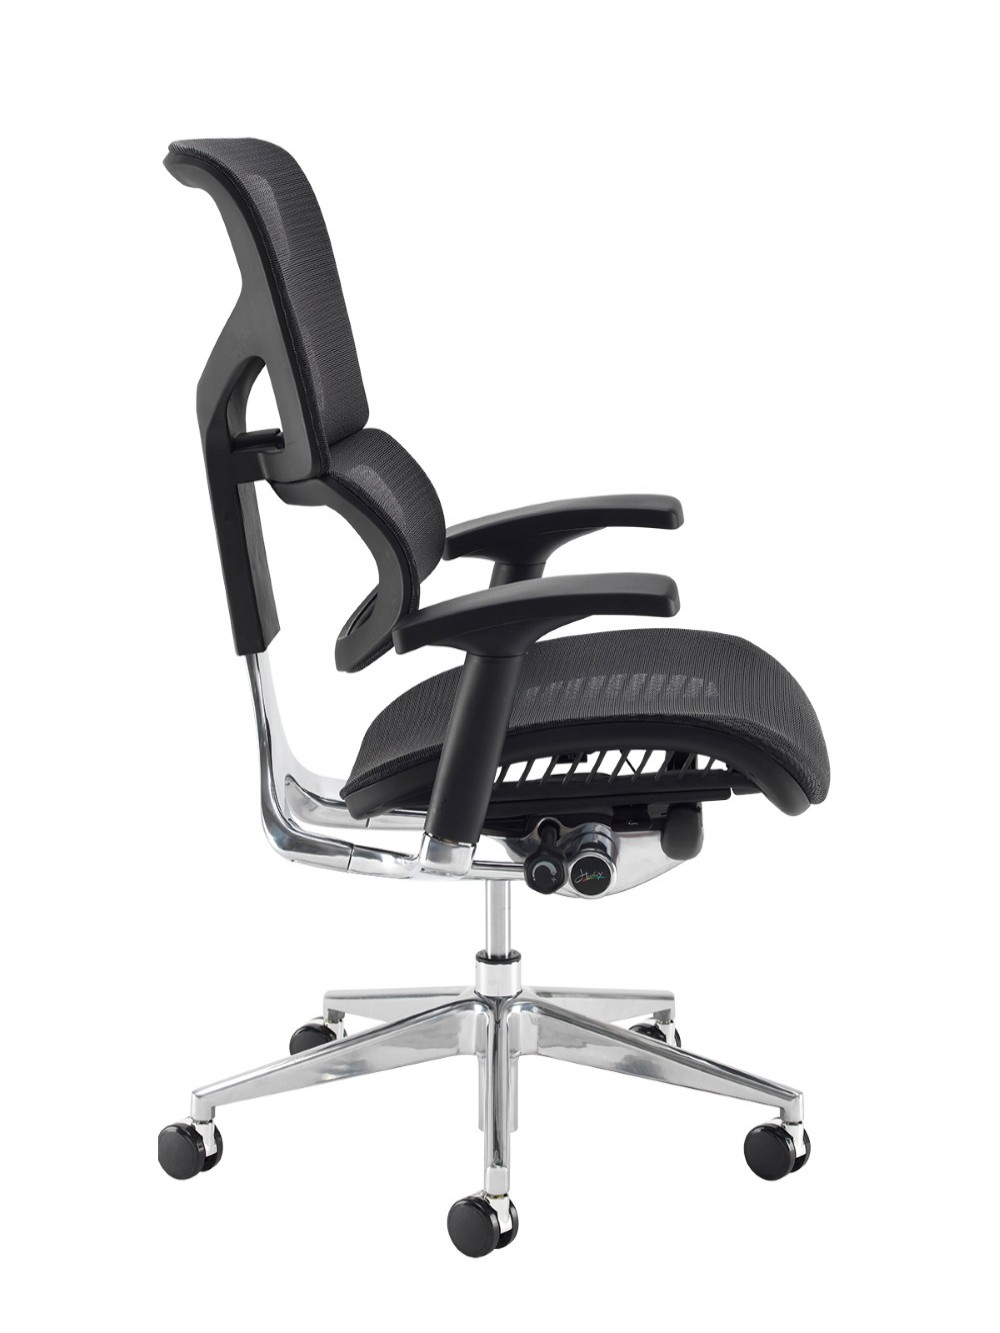 Ergonomic Office Chair Black Mesh Dynamo DYNX300E1-C by Dams